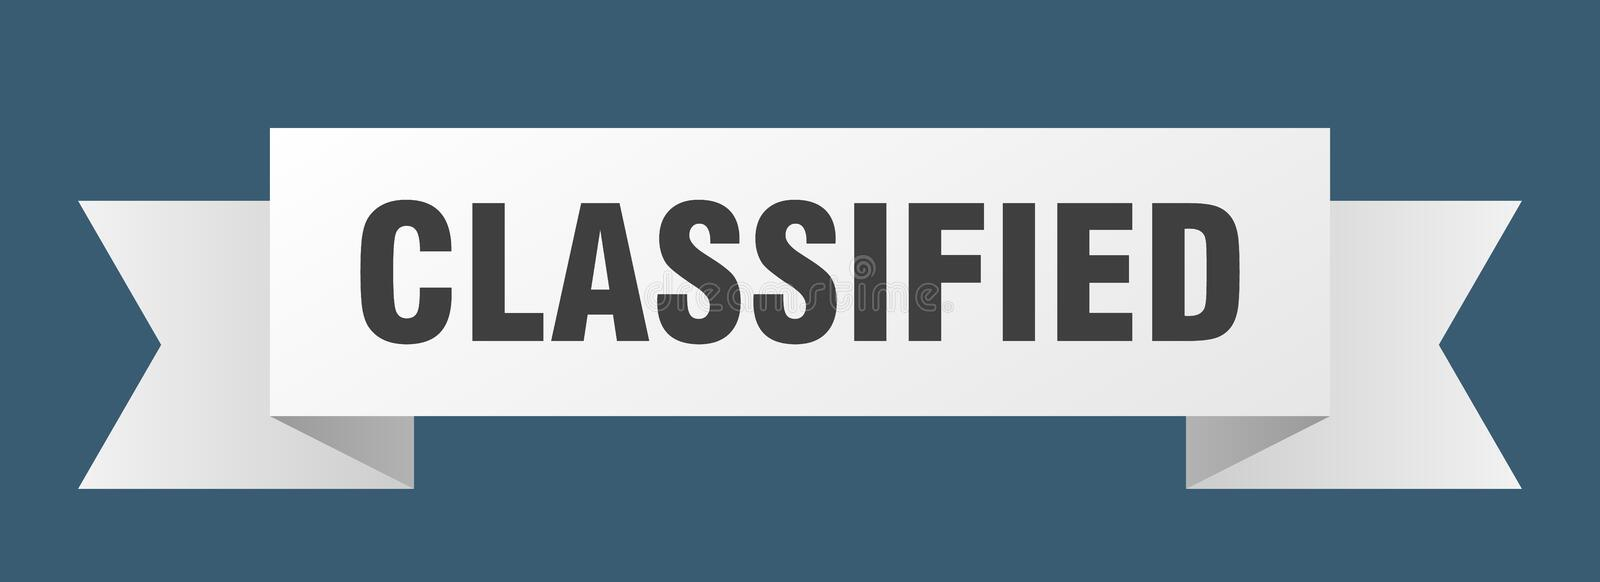 Classified ribbon. Classified banner. sign. classified stock illustration